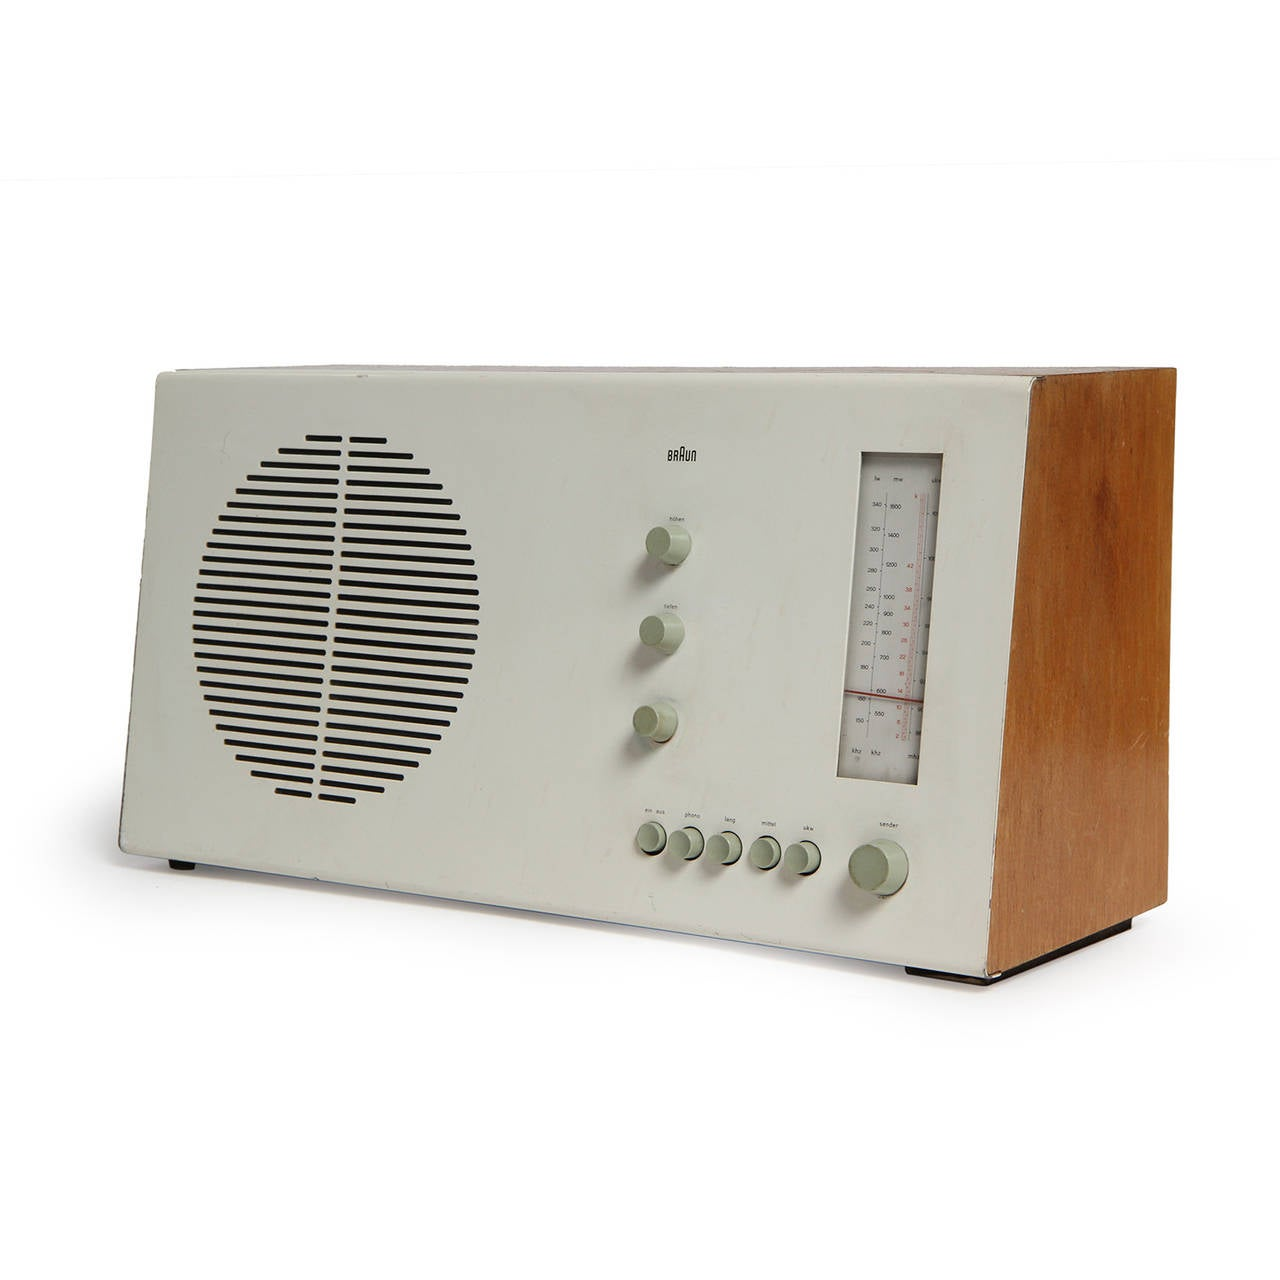 A spare modernist desk radio devoid of extraneous detailing having a distinctive slanted powder-coated sheet steel front and honey-toned beech wood on the sides.